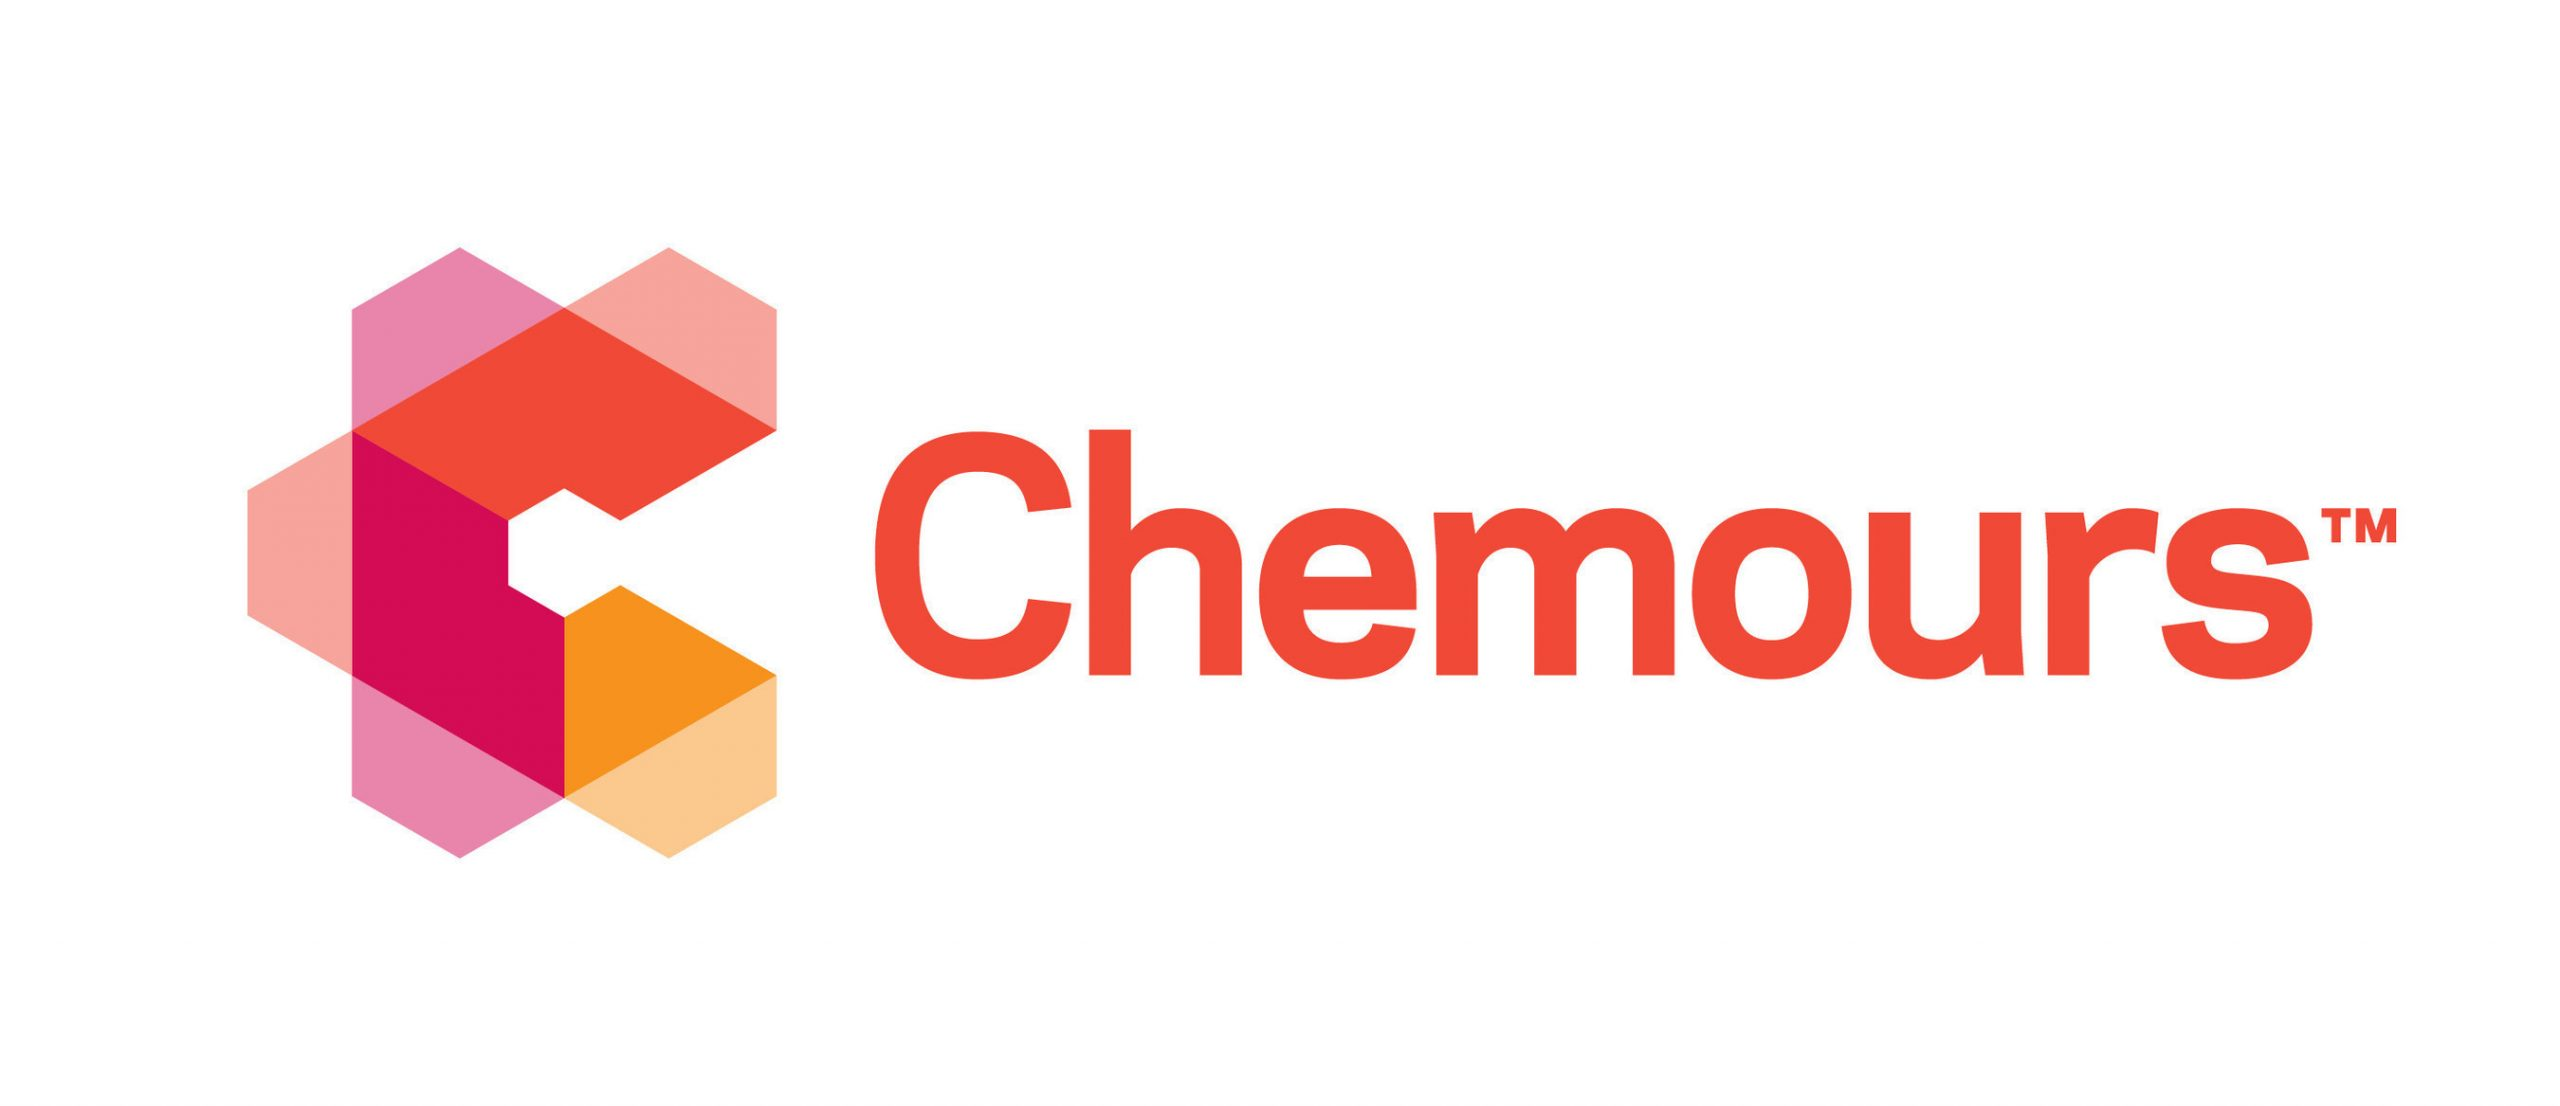 The Chemours CompanyLOGO